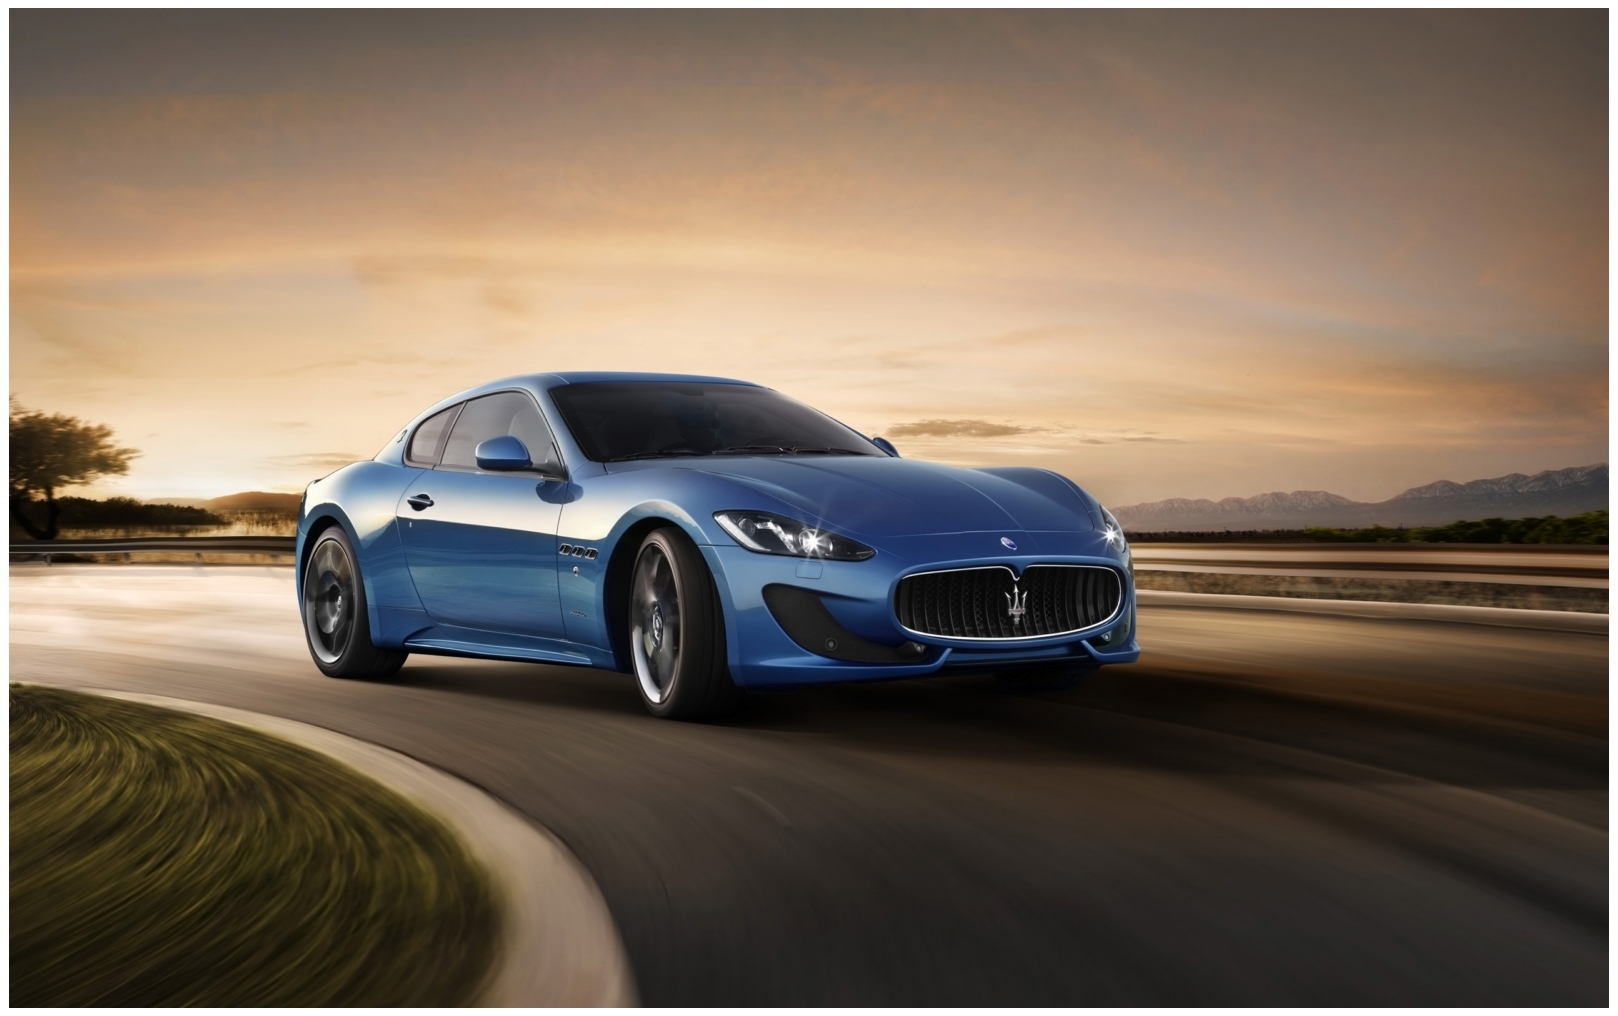 Maserati Granturismo Hd Wallpaper widescreen 1618x1016